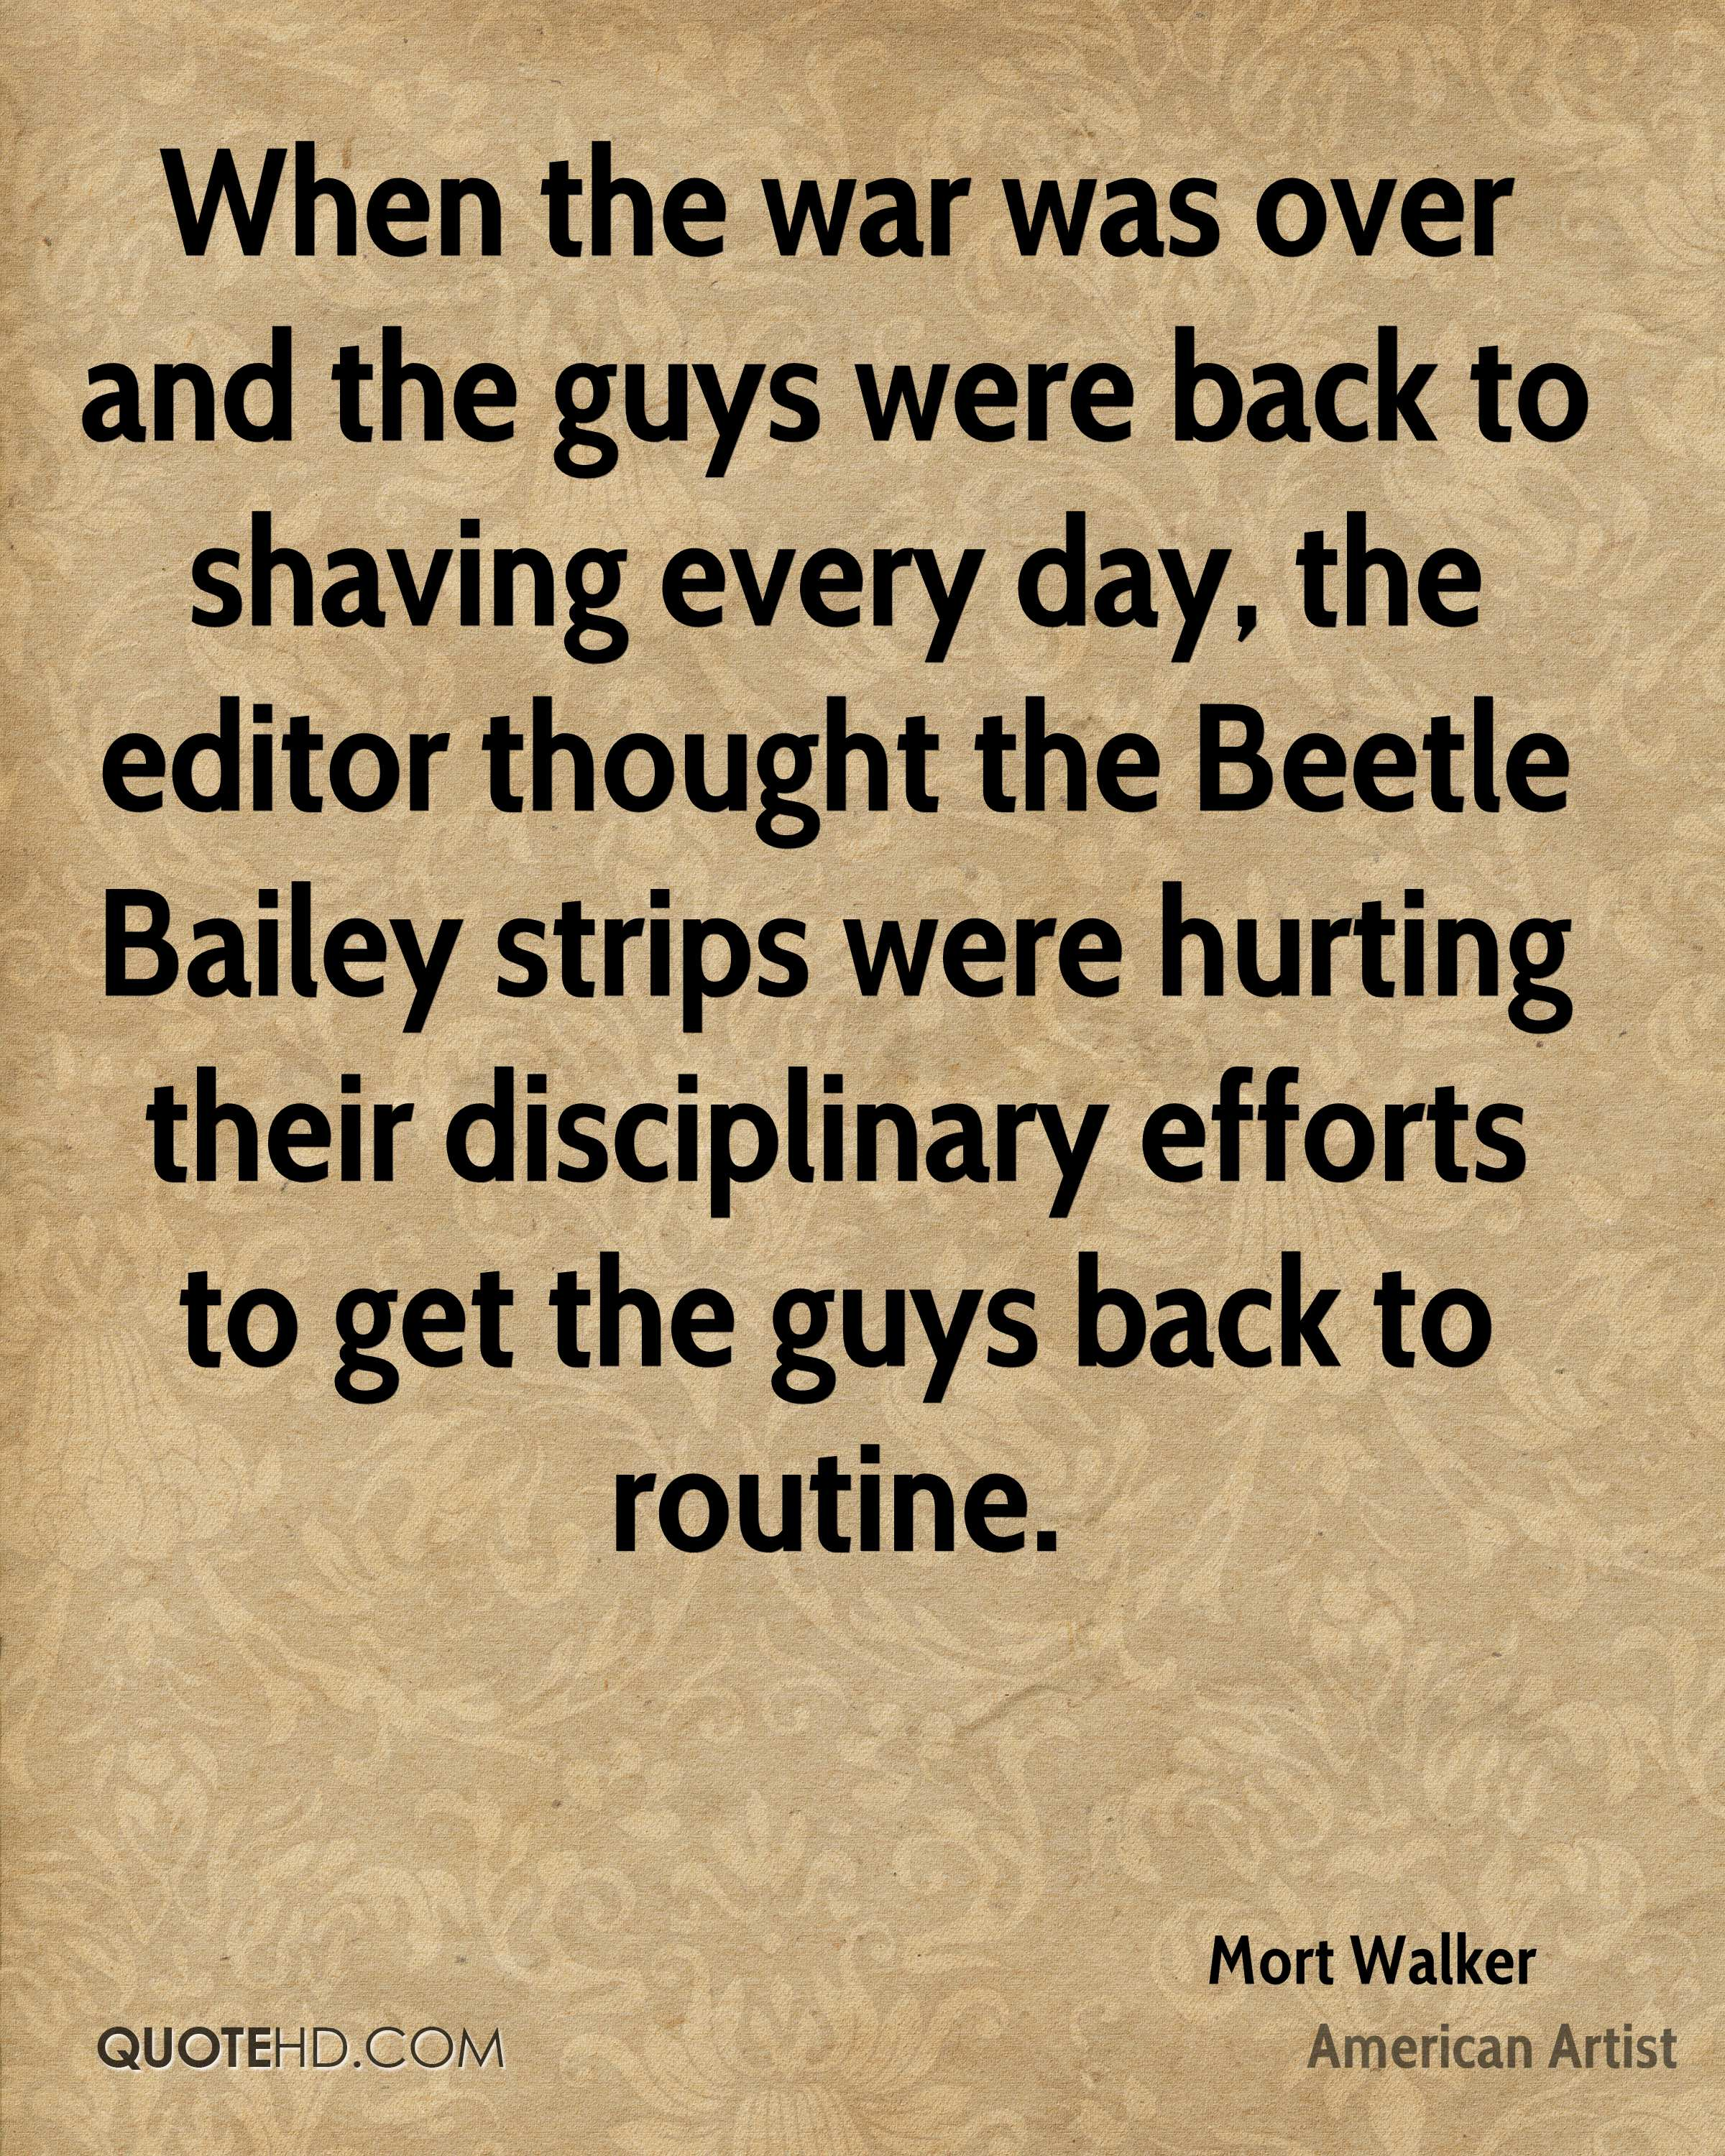 When the war was over and the guys were back to shaving every day, the editor thought the Beetle Bailey strips were hurting their disciplinary efforts to get the guys back to routine.